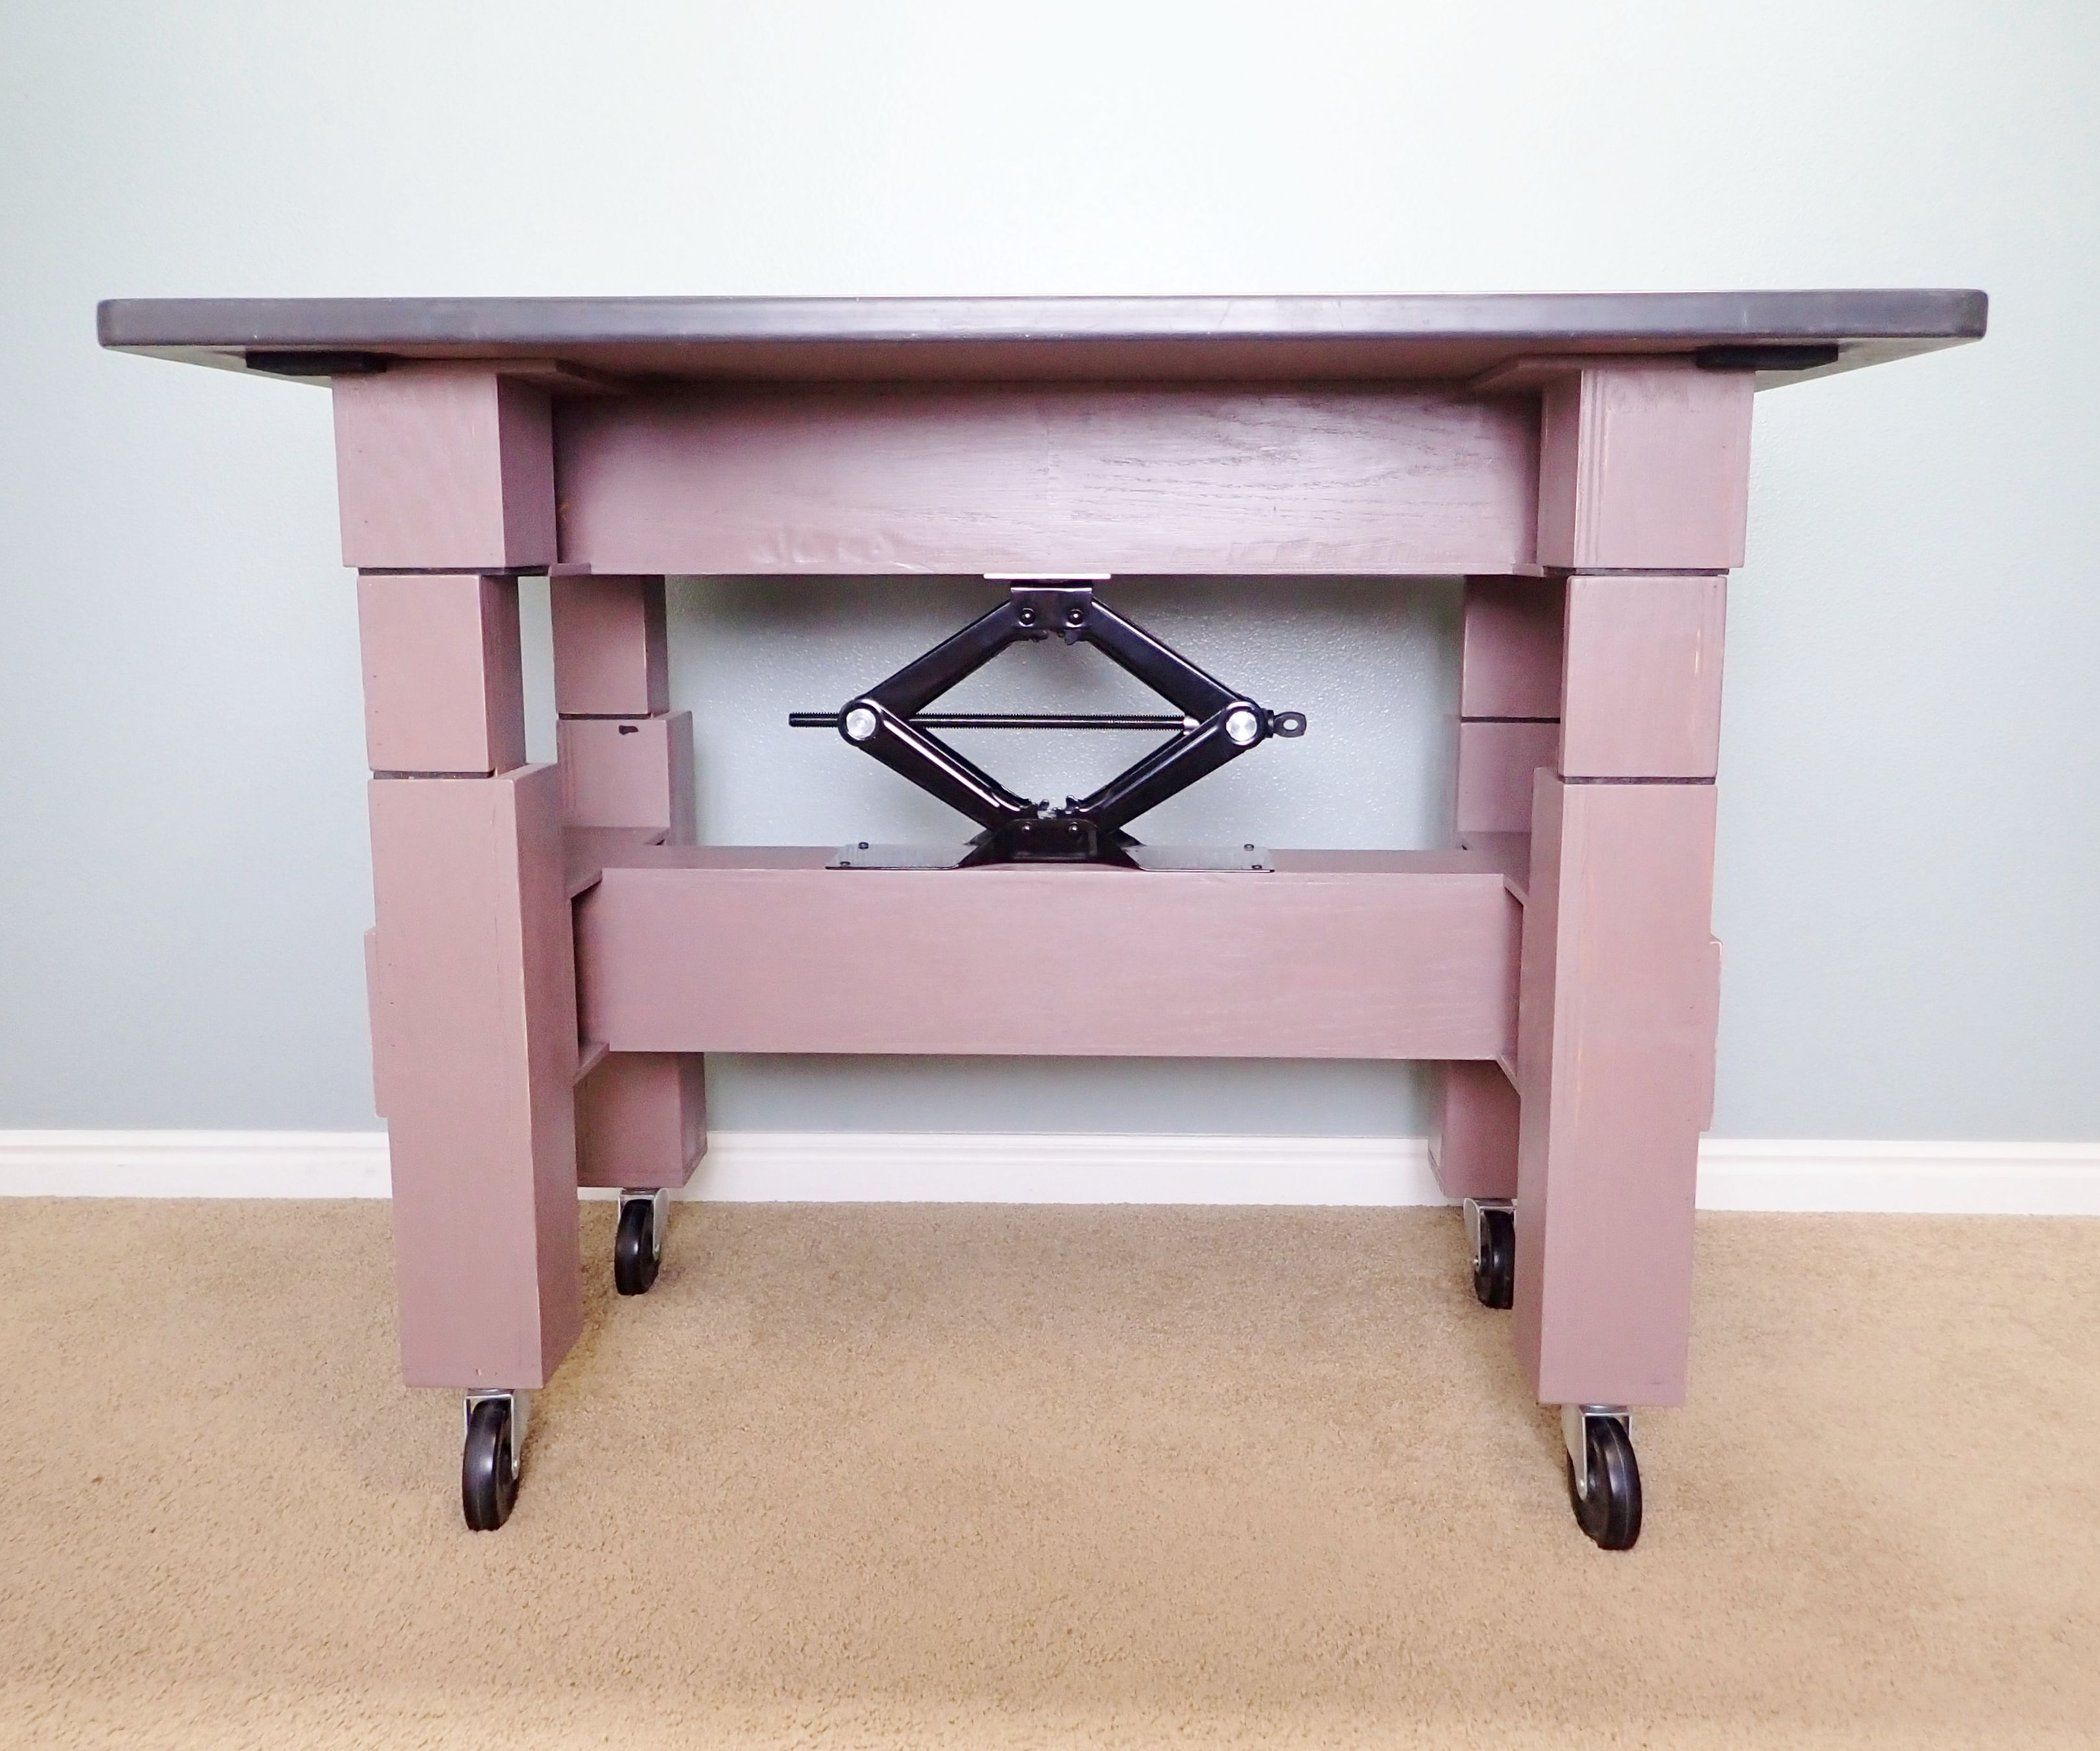 Make An Adjustable Height Table With A Car Jack Adjustable Height Table Adjustable Height Desk Adjustable Height Work Table